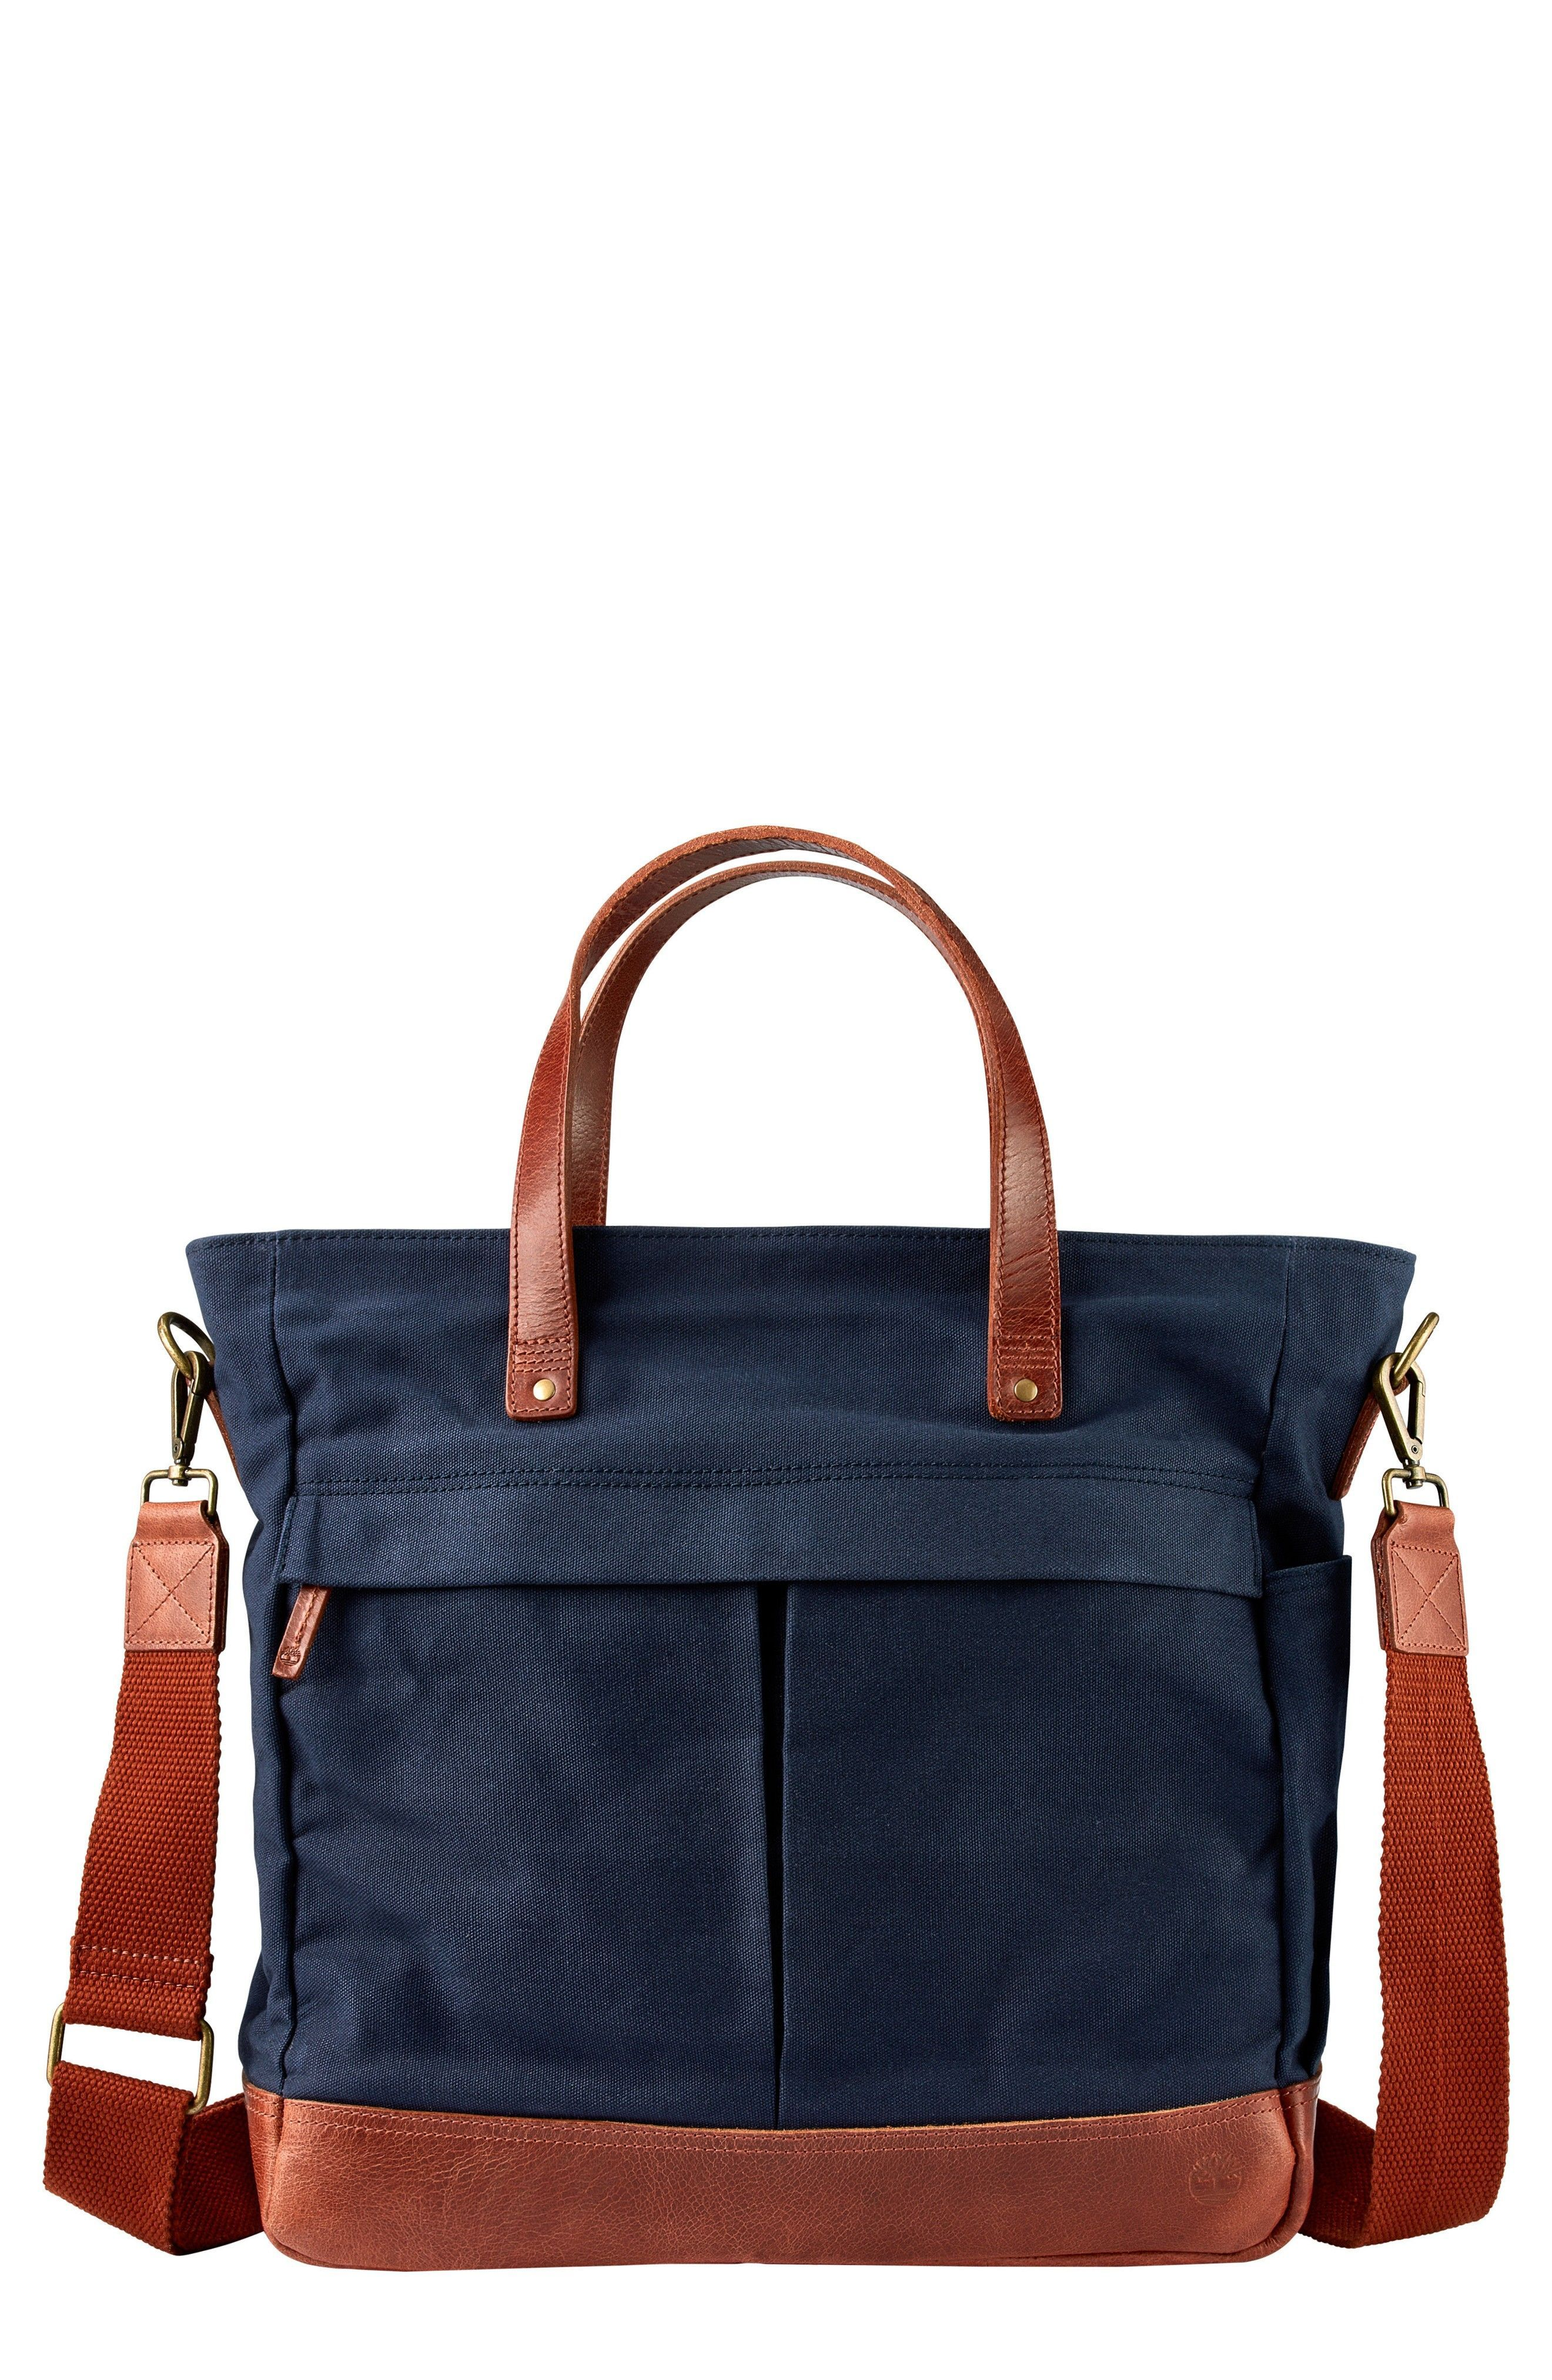 5 of the best travel purses for vacation and every day use   5purses ... 47e89a702ccf2